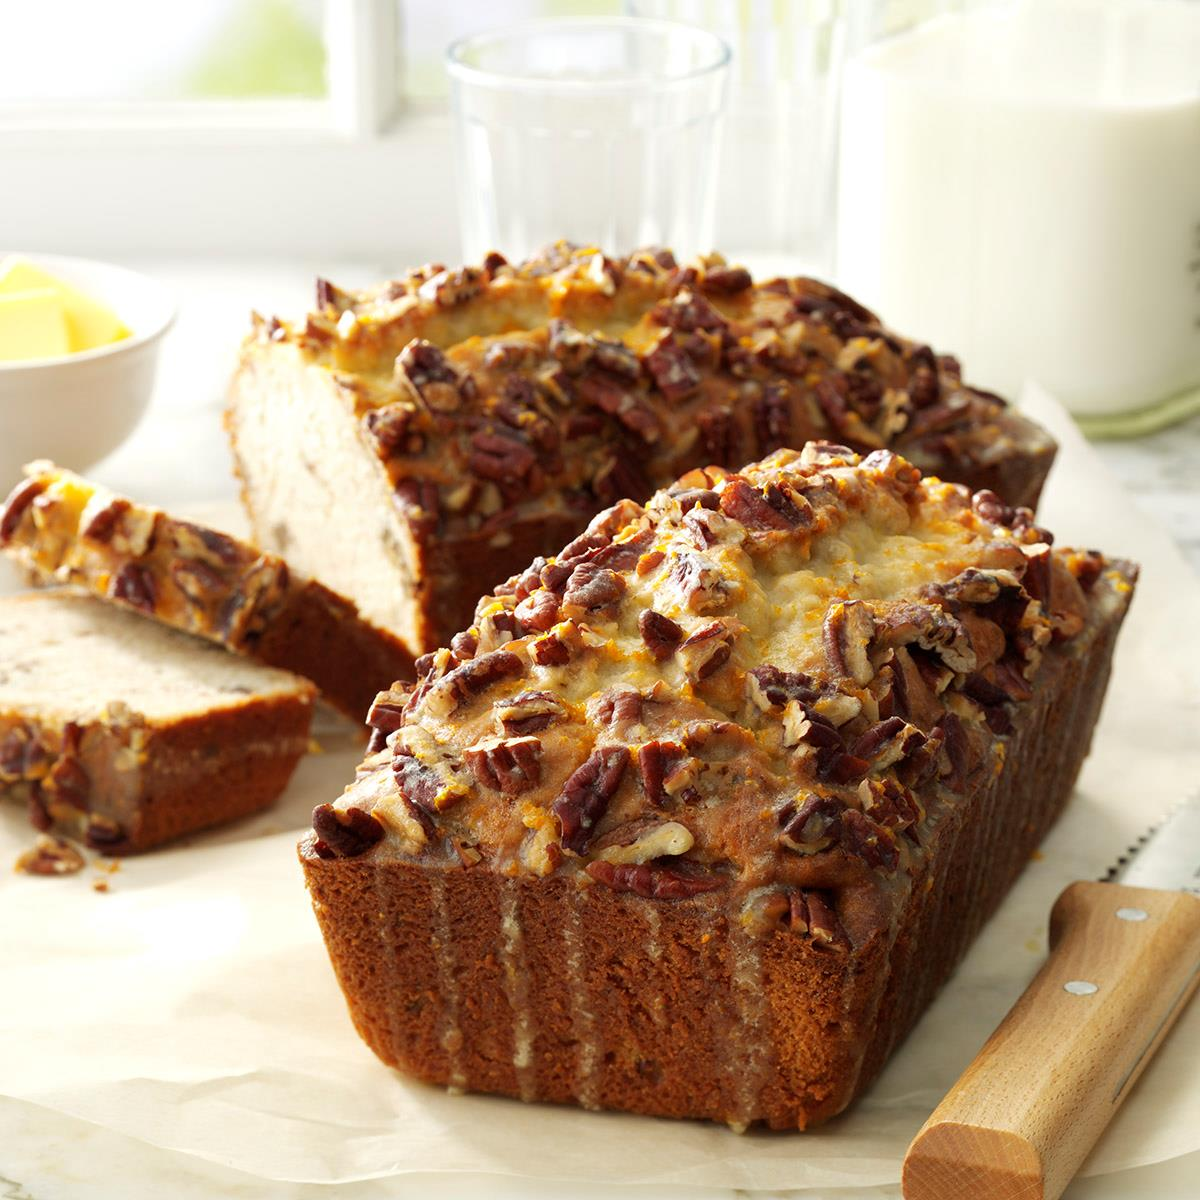 Banana walnut bread recipe food network kitchen food dinosauriensfo this site contains all information about banana walnut bread recipe food network kitchen food forumfinder Images